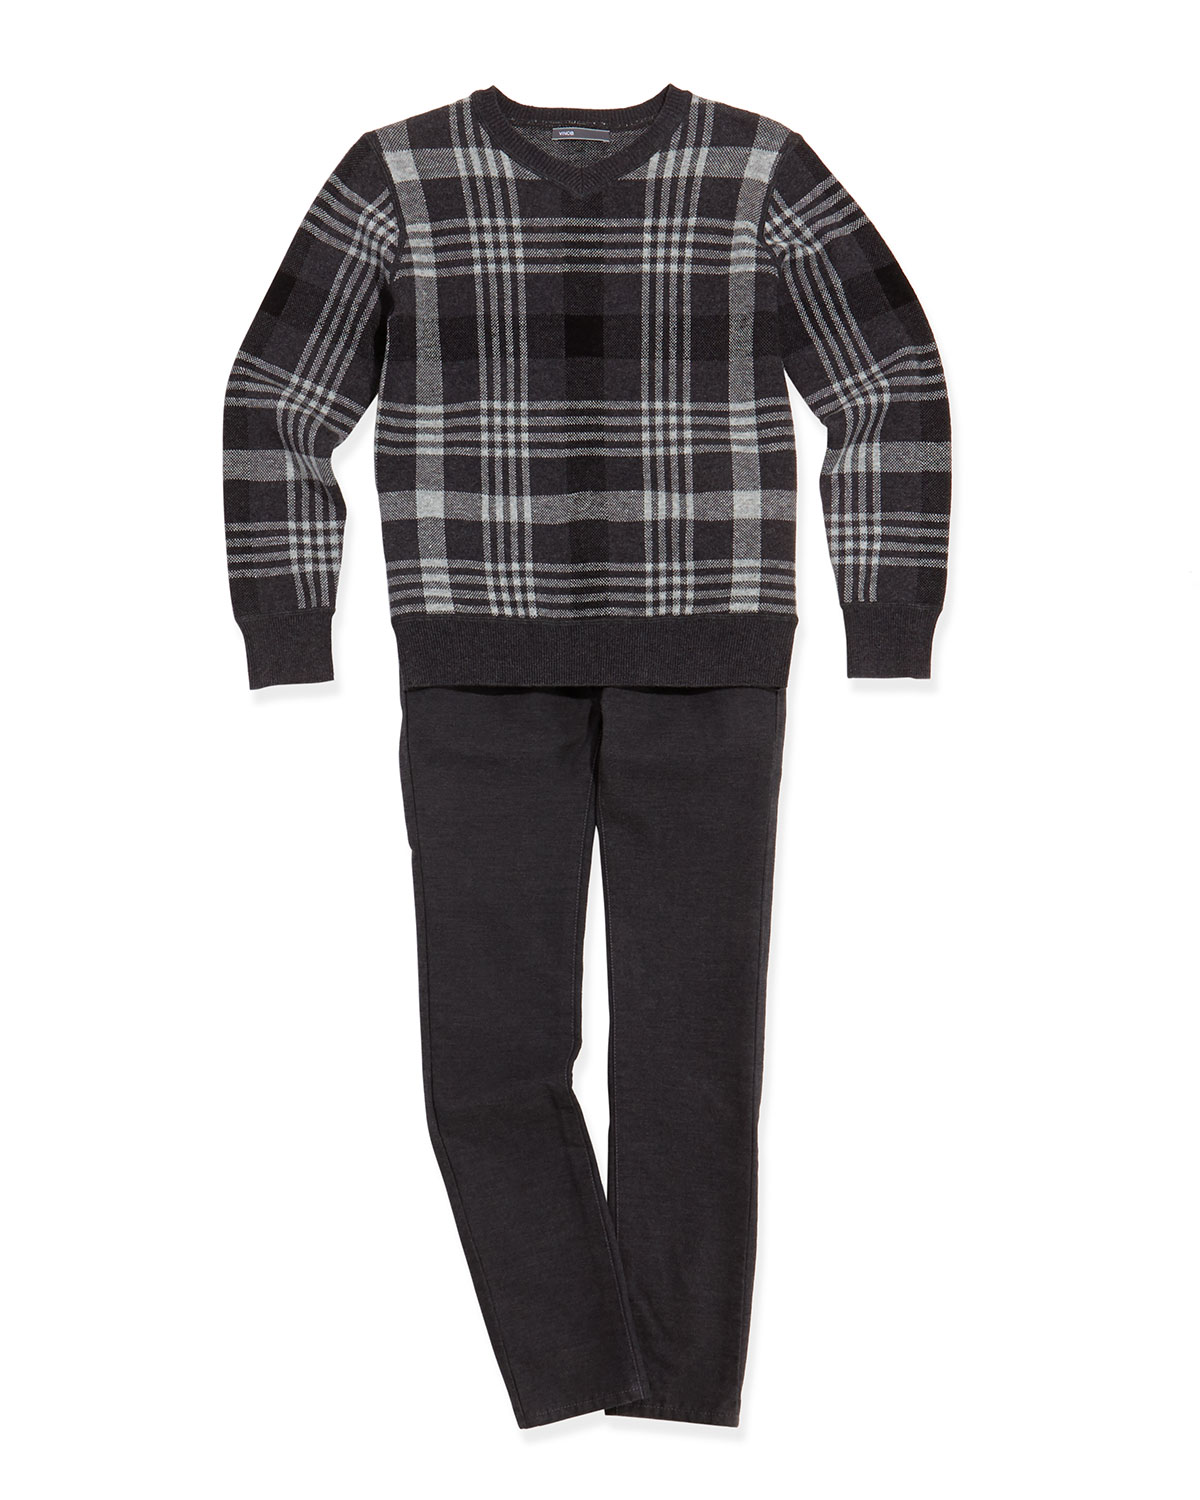 Boys' Plaid Jacquard V-Neck Sweater & Brushed Heathered Pants